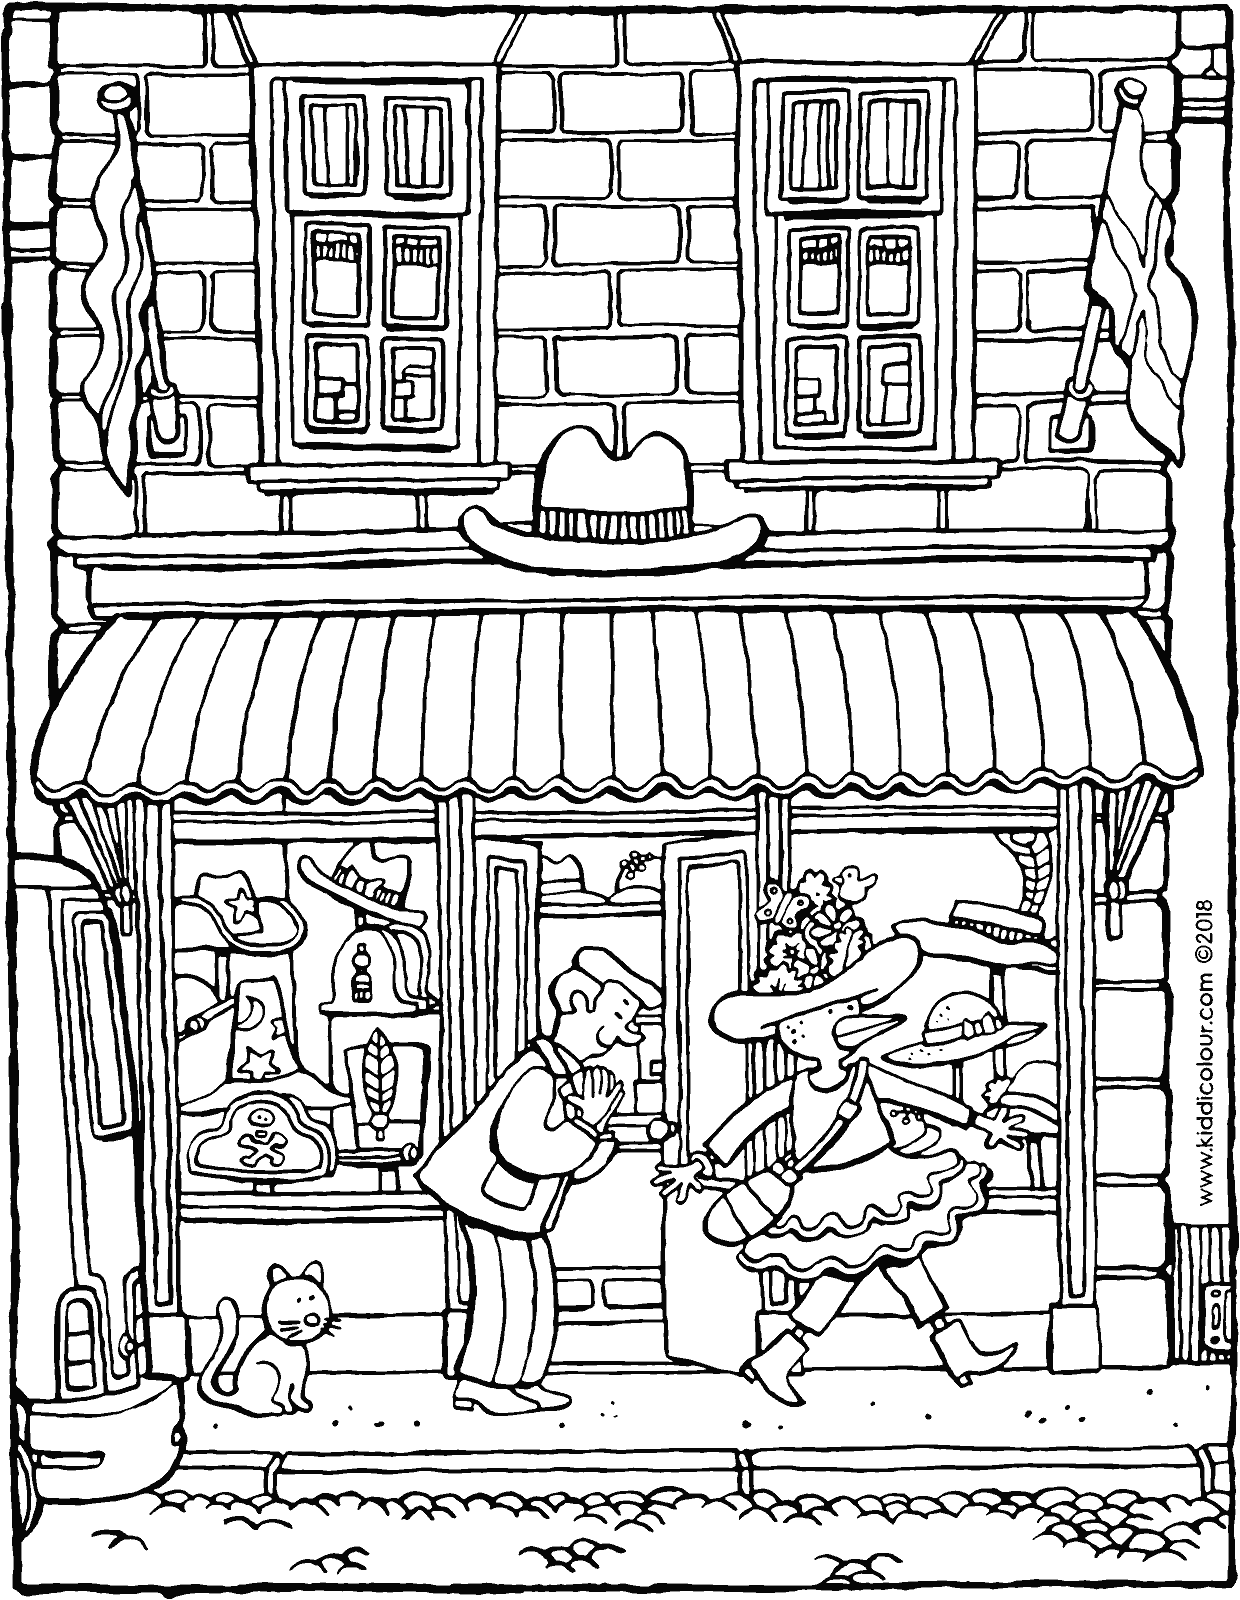 hat shop colouring page drawing picture 01V